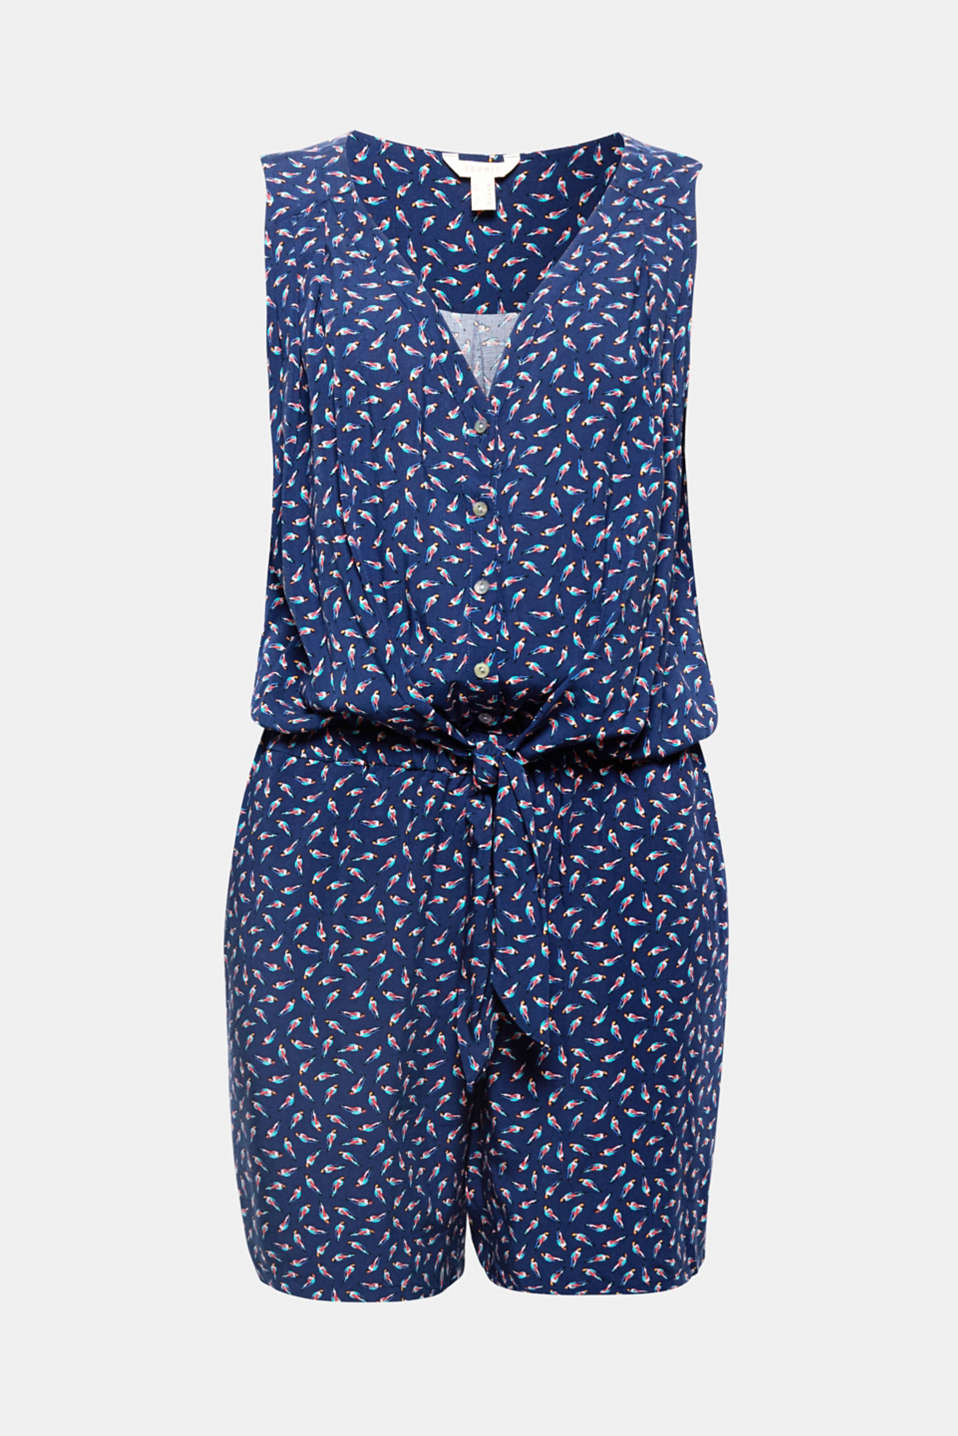 Featuring a tie-around belt and a casual button placket, a colourful bird motif gives this summer jumpsuit its charming look!